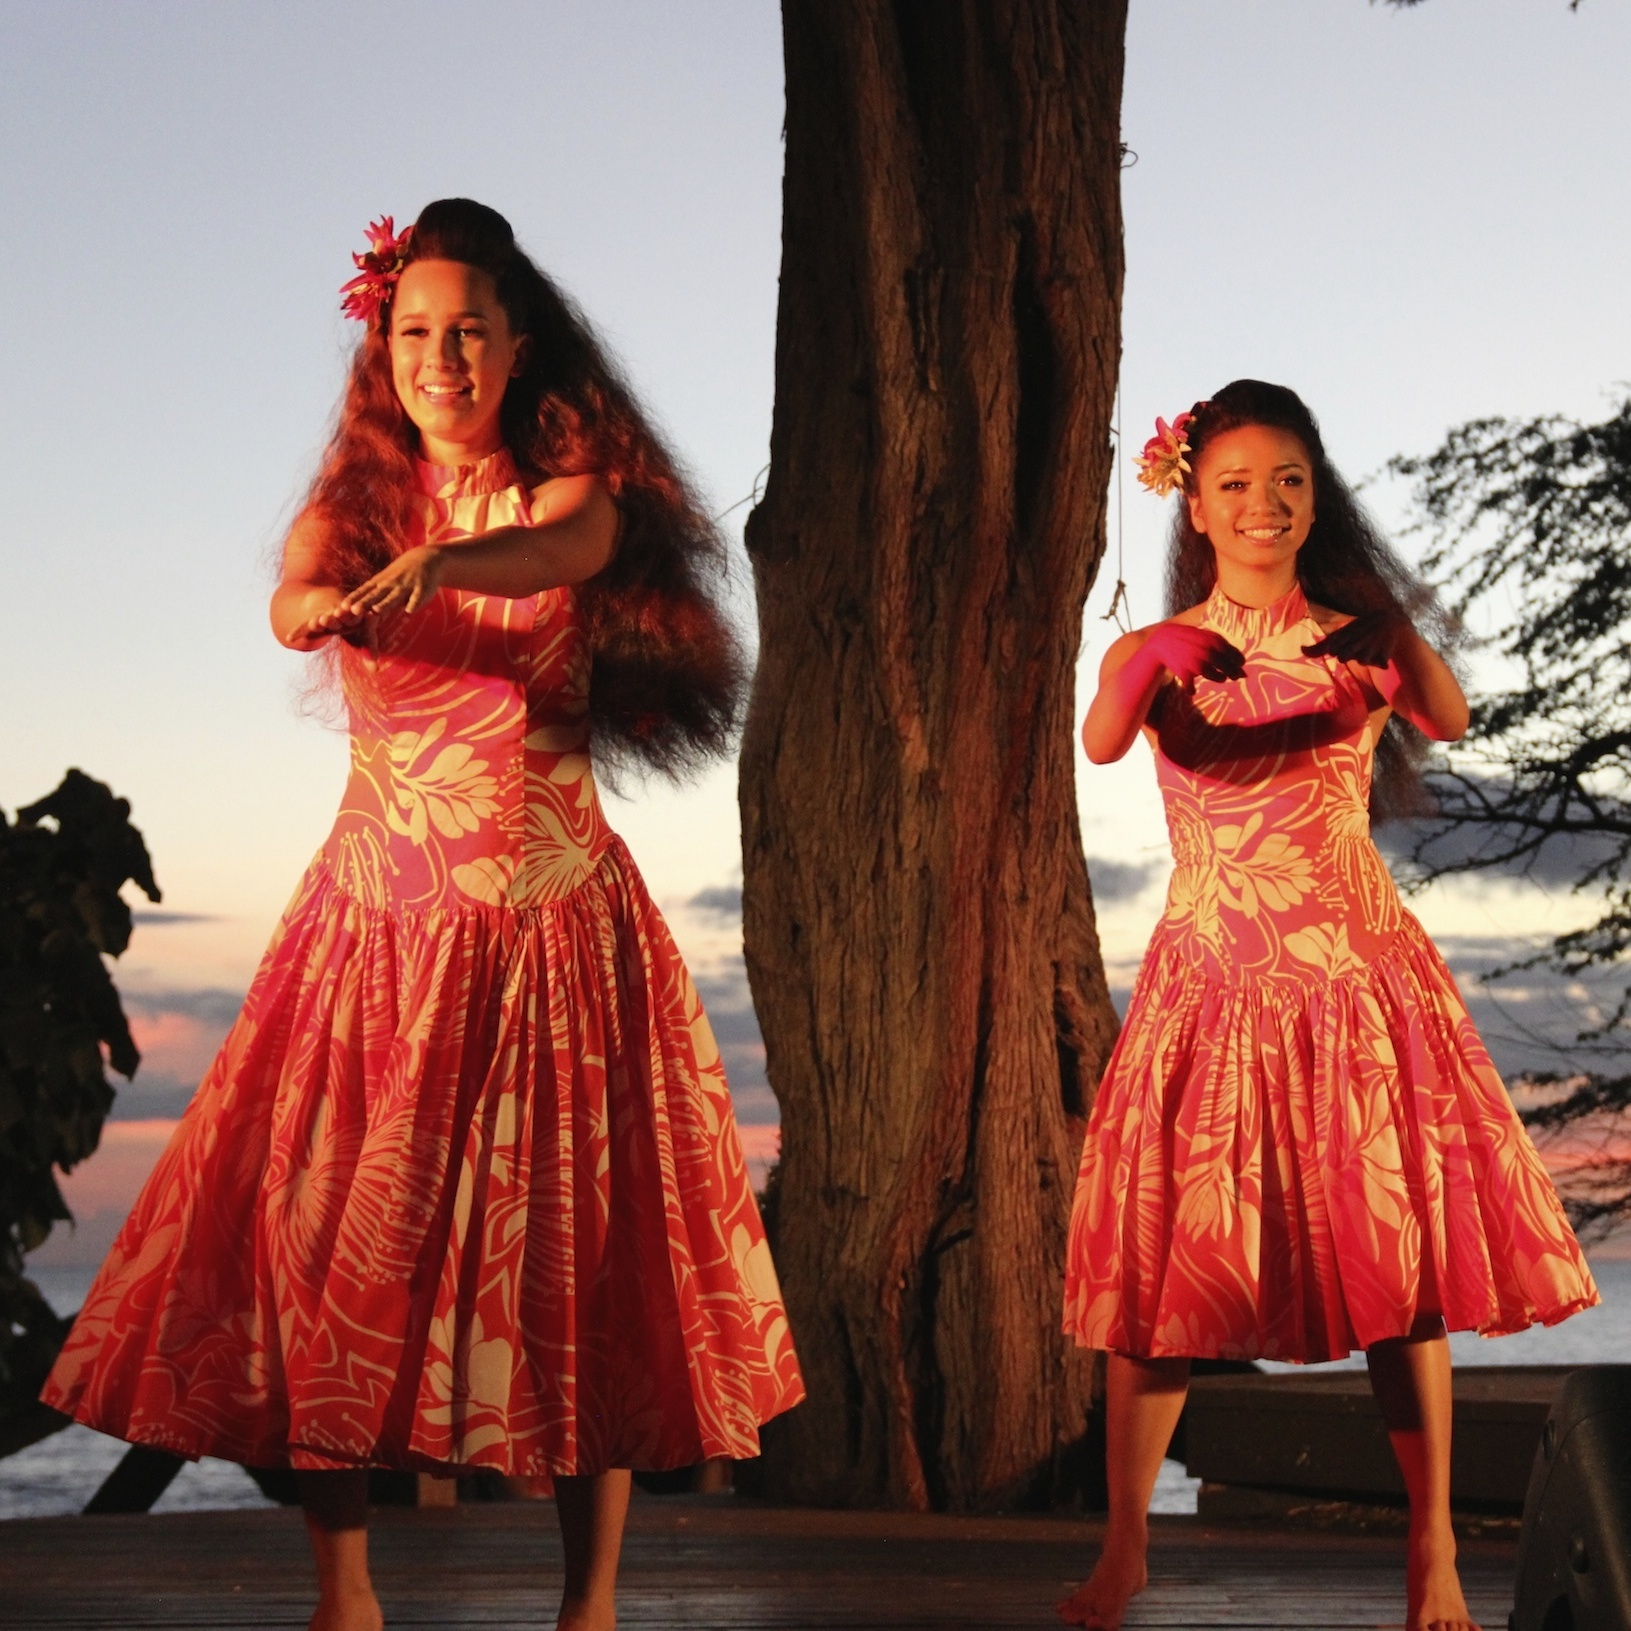 Lim Family Luau dancers at the Mauna Kea Resort Hotel